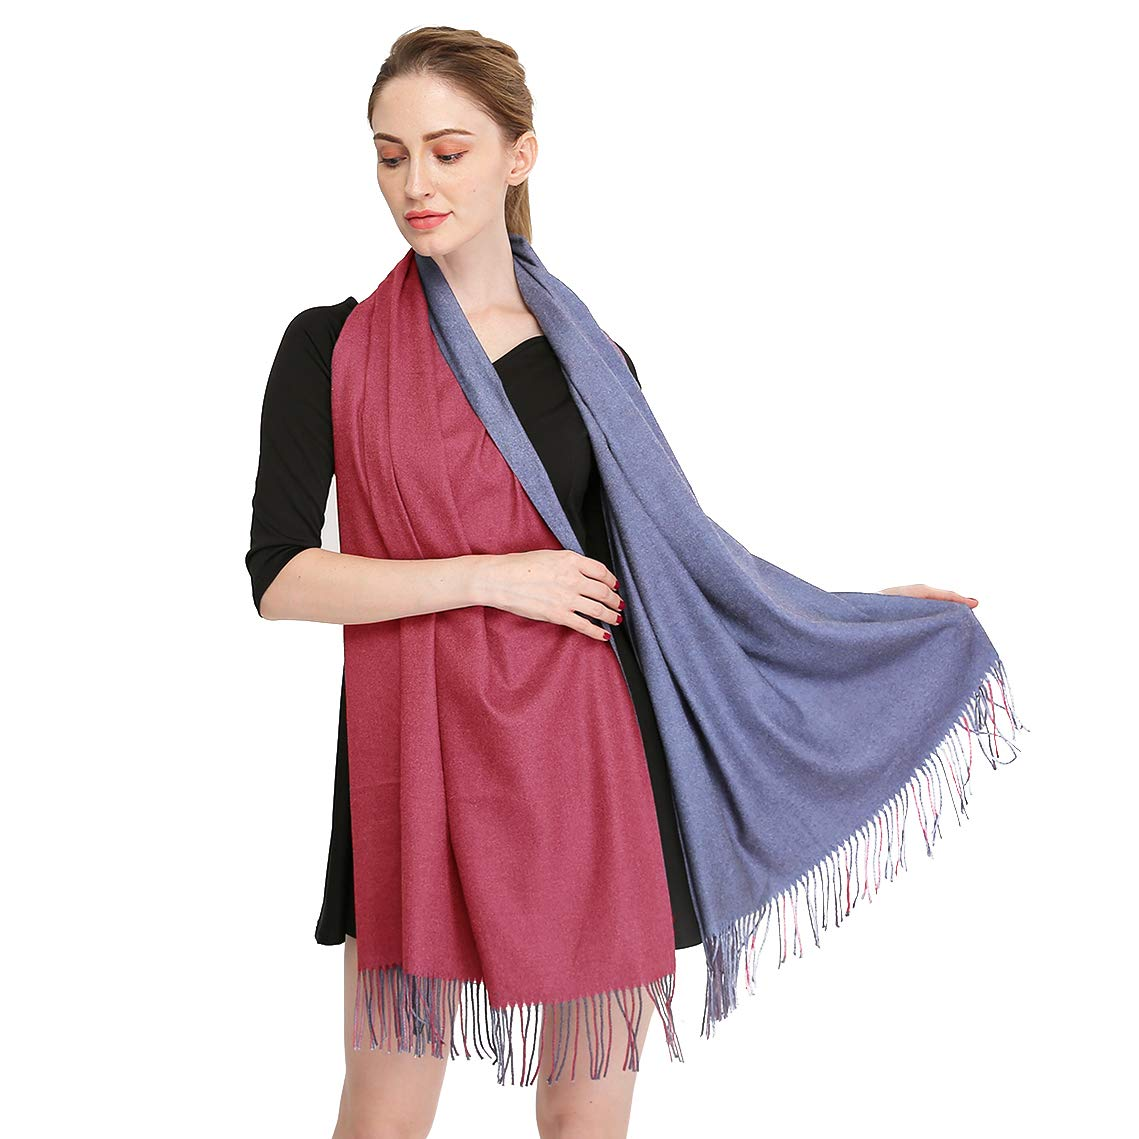 03  Longwu Cashmere Wrap Shawl Stole for Women Winter Extra Large(79  X 28 ) Men Solid Lambswool Pashmina Scarf